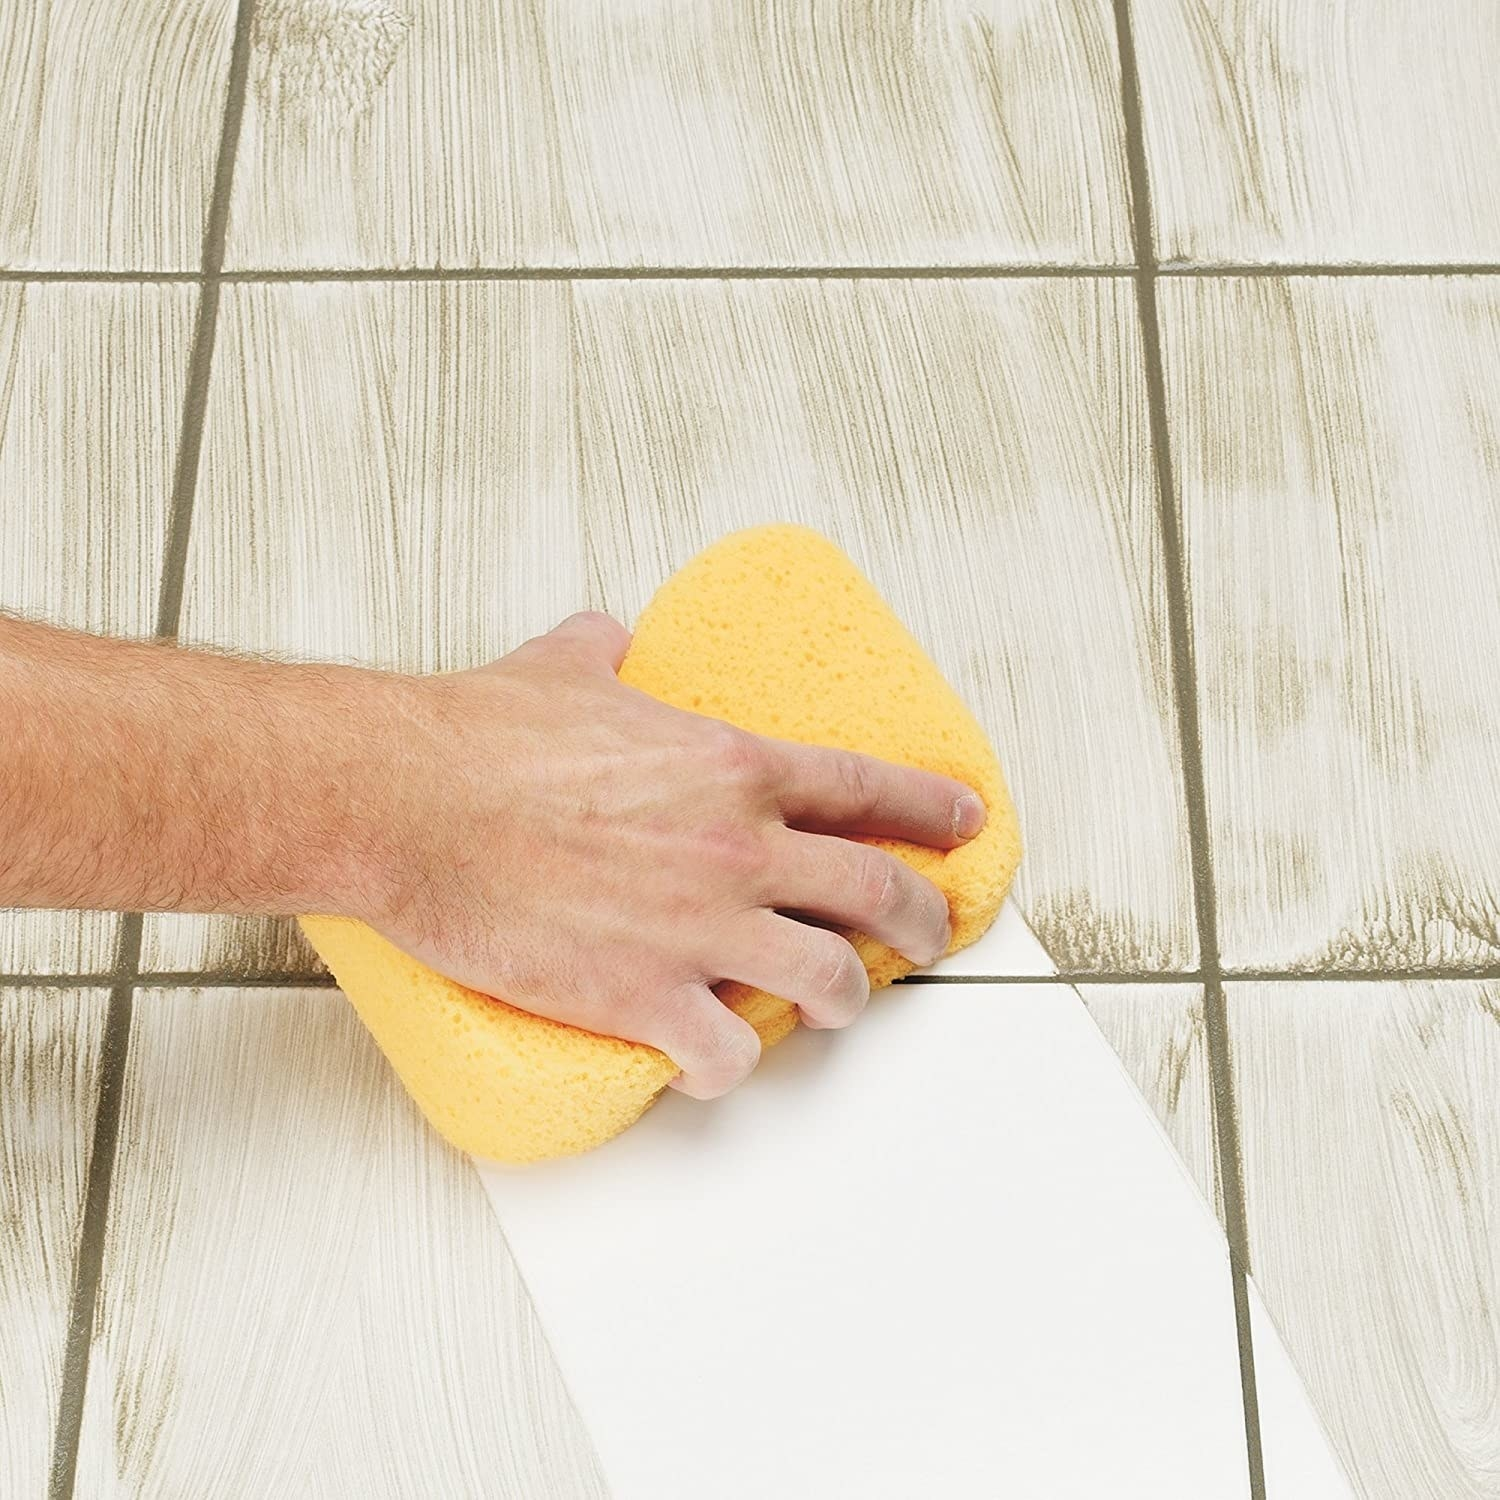 A person scrubbing their tiles with the grout sponge